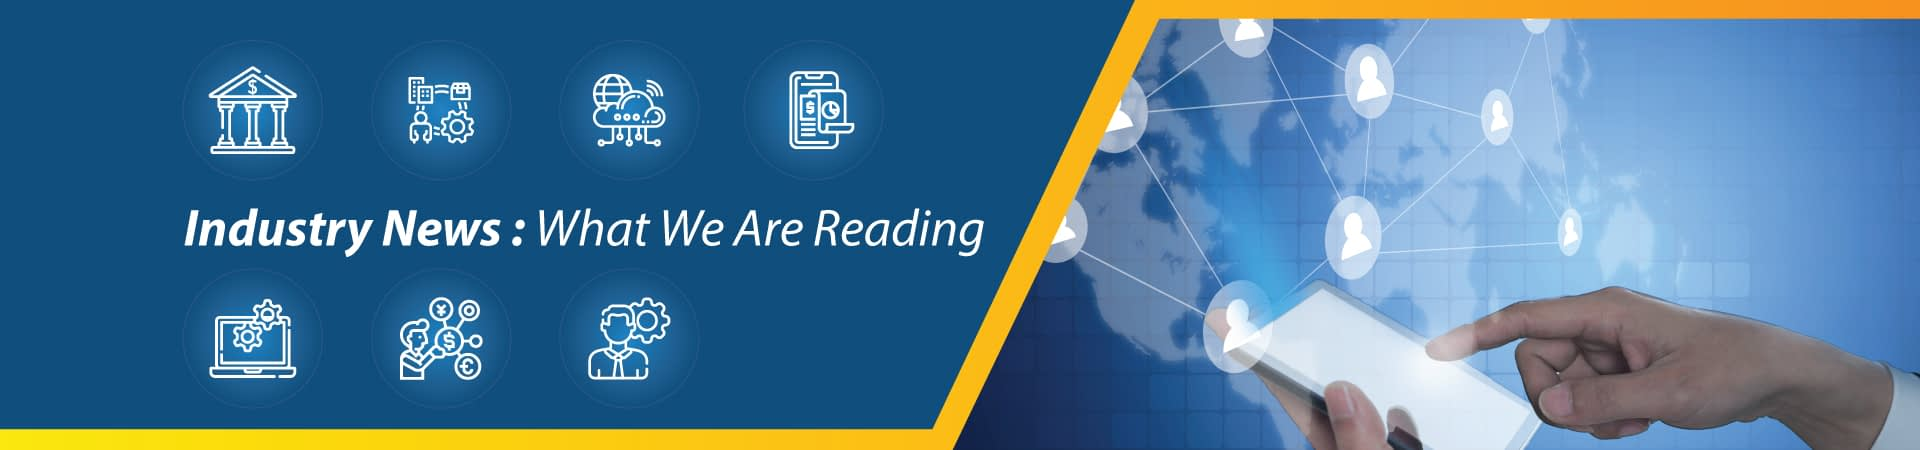 What we are reading banner